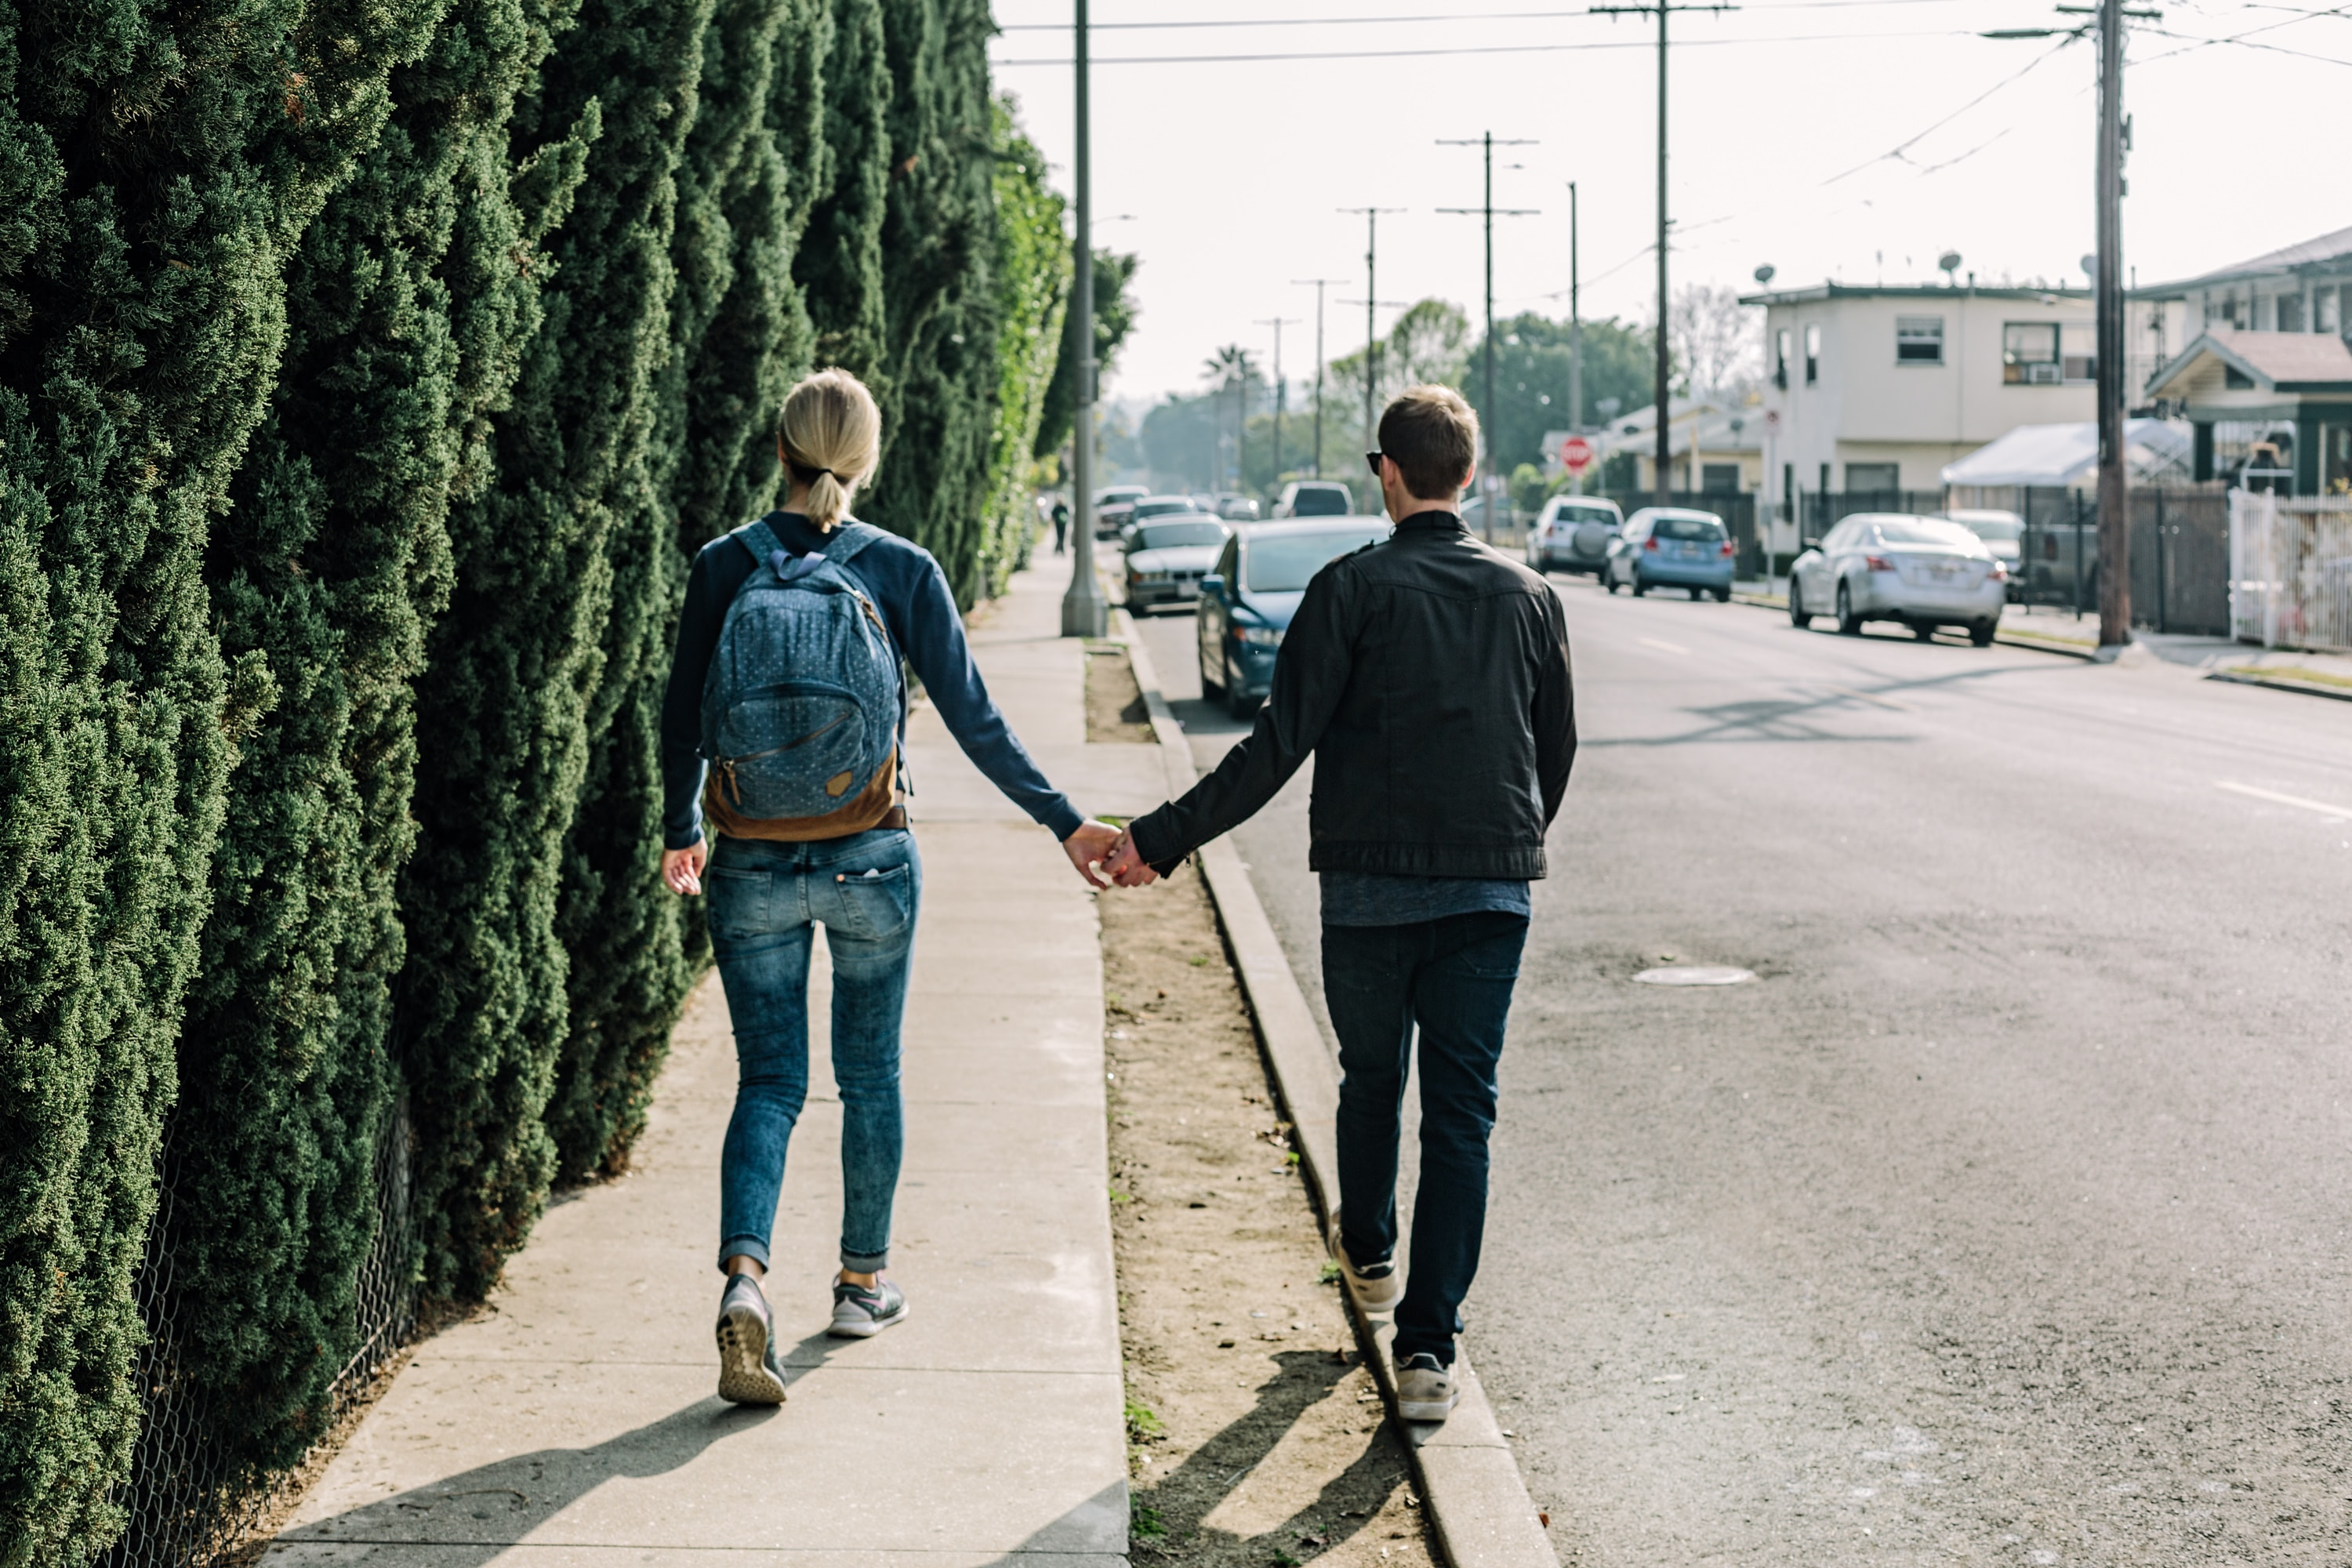 A couple walks holding hands, one on the sidewalk and one on the curb